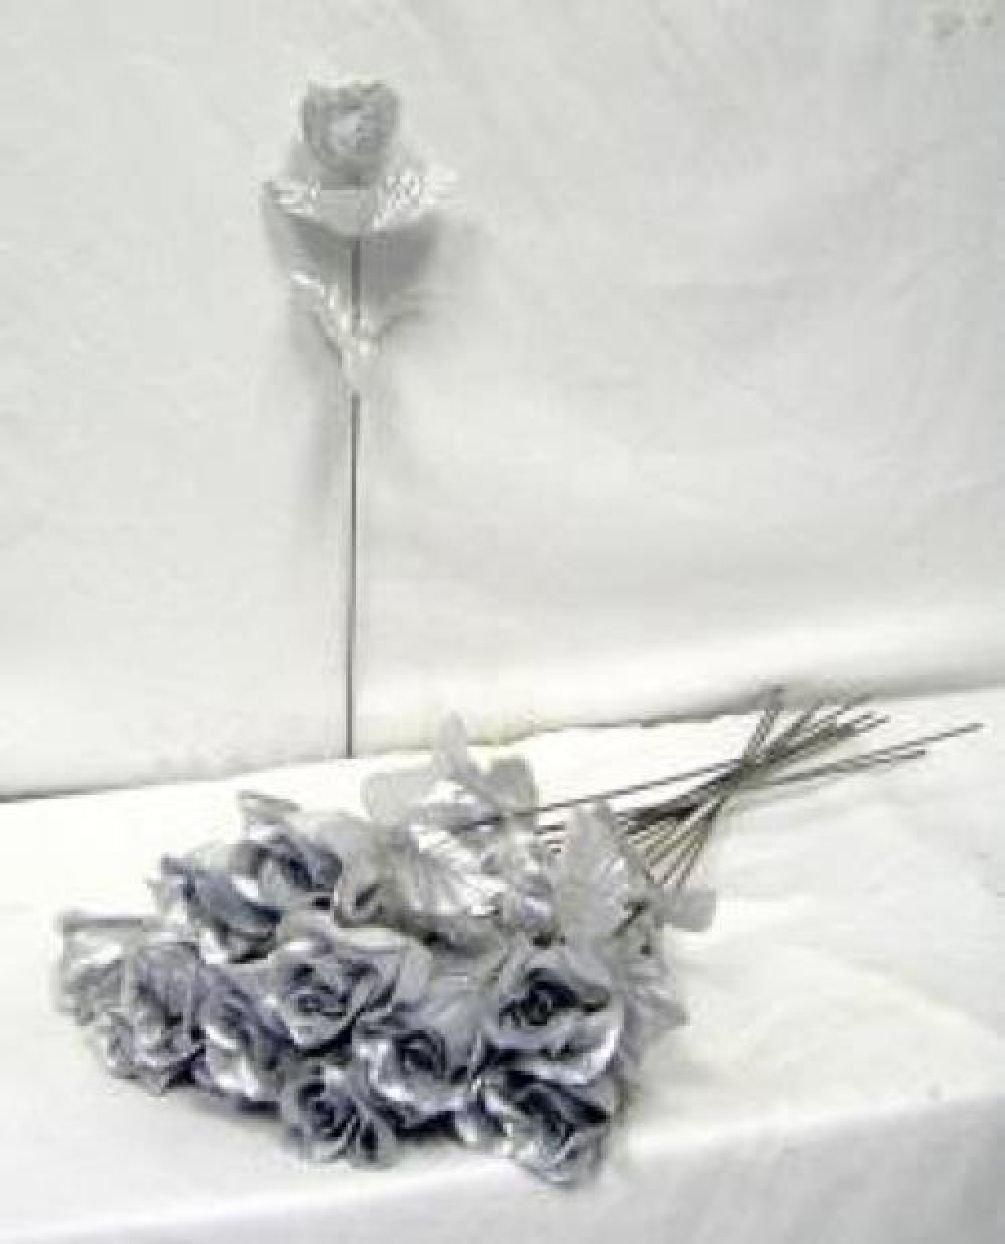 100 Silver Roses Single Long Stem Rose Buds Silk Wedding Bouquet Flowers Party by Dorigan Artificial Art Flowers